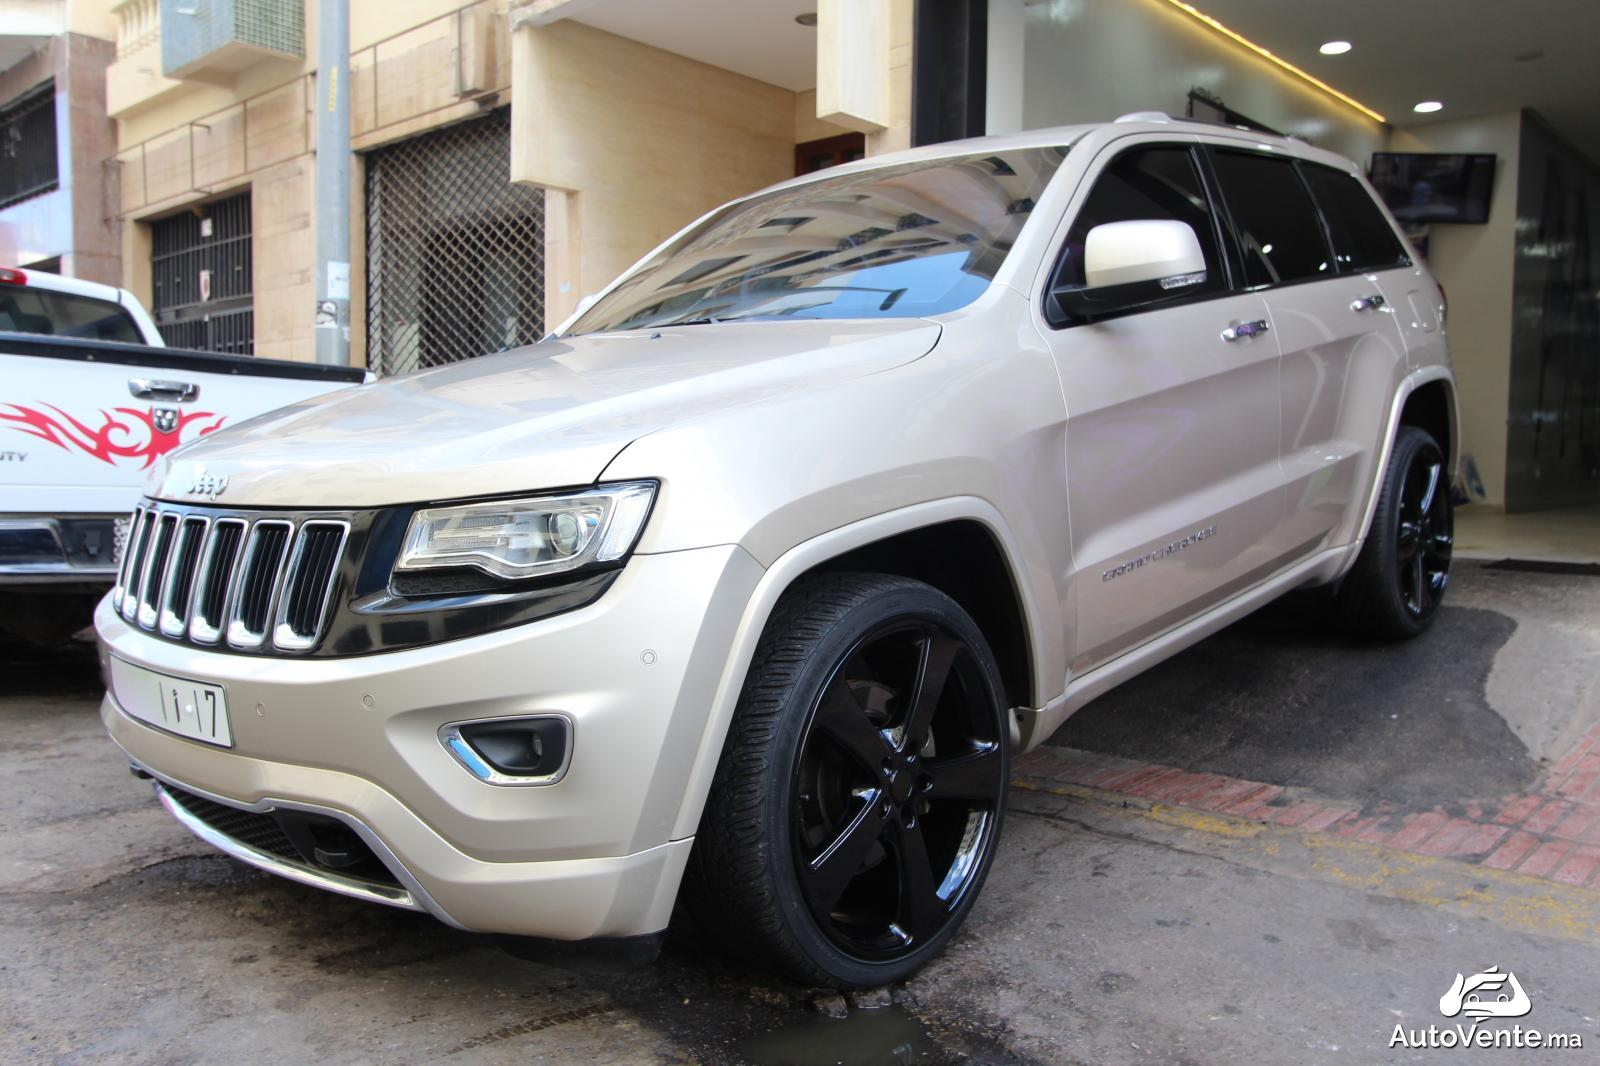 acheter jeep grand cherokee d 39 occasion a casablanca maroc autovente. Black Bedroom Furniture Sets. Home Design Ideas